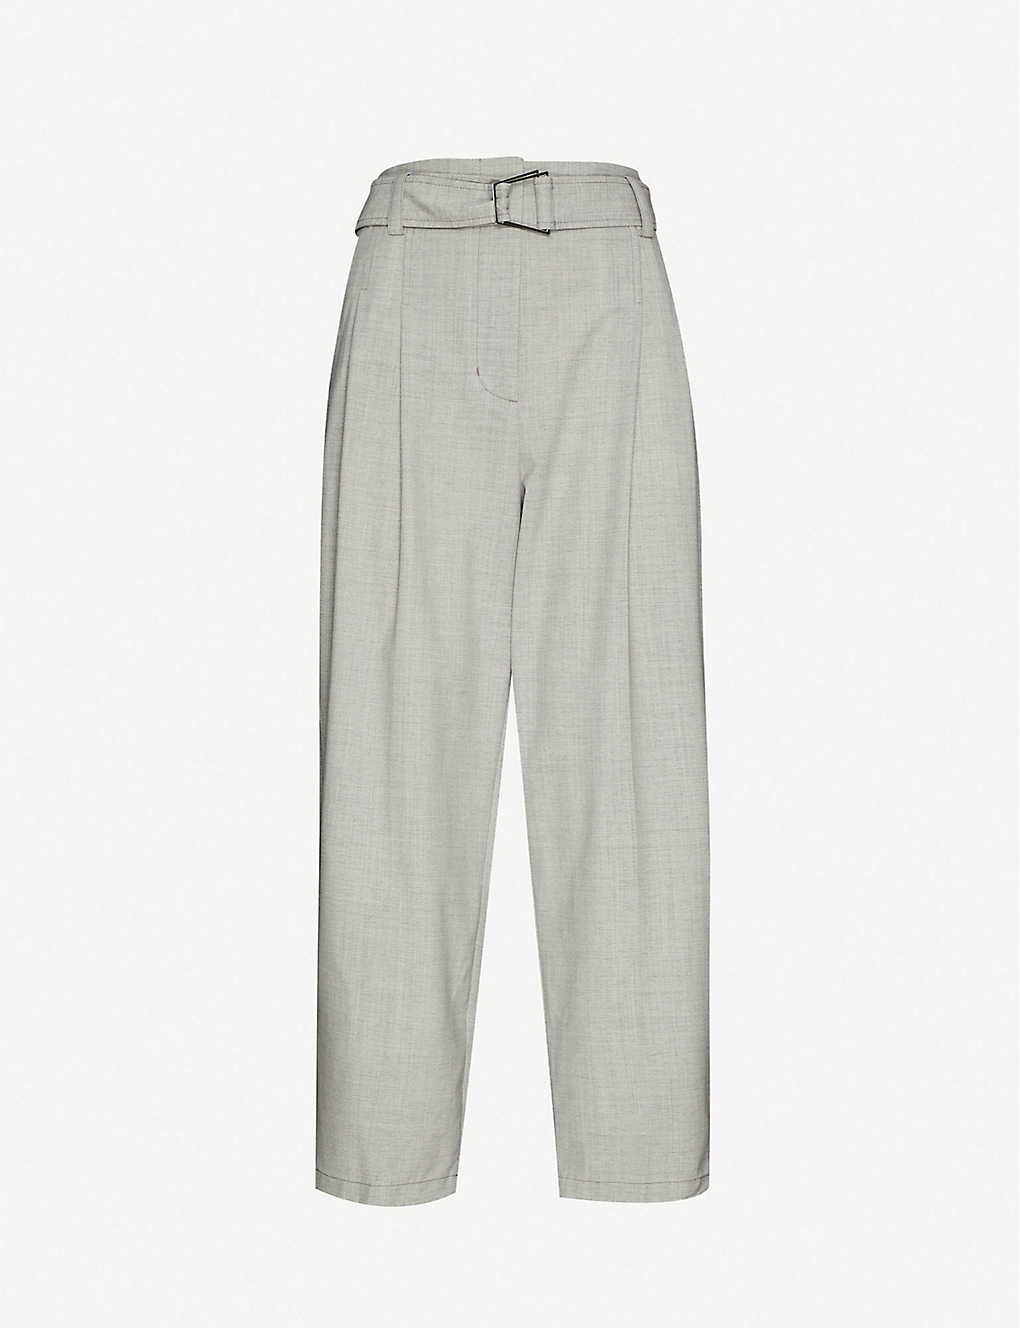 3.1 PHILLIP LIM: Chambray high-rise tapered wool trousers